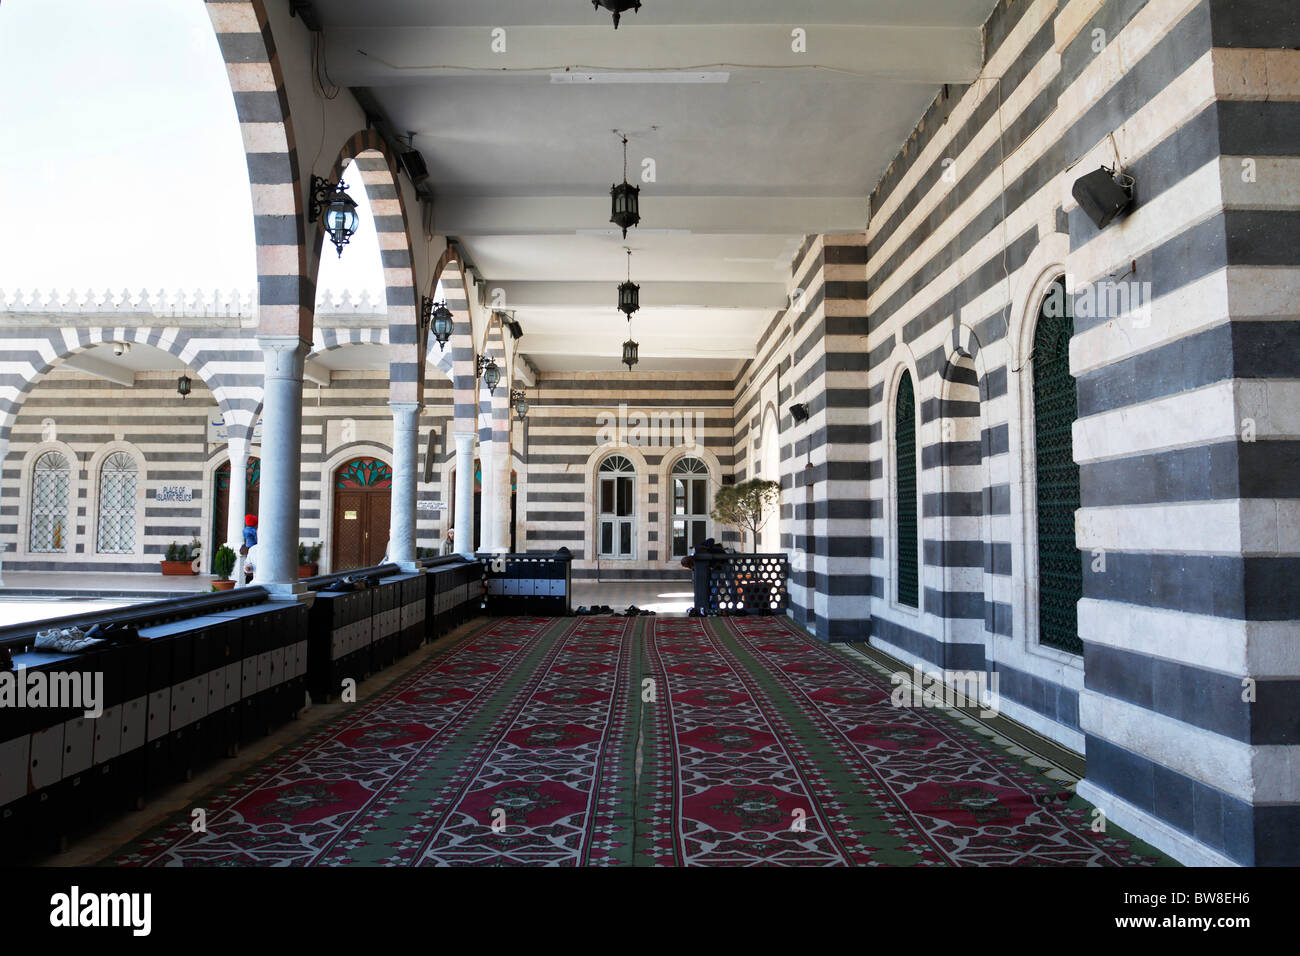 The corridor at Khalid Al-Walid mosque in Homs, Syria. - Stock Image